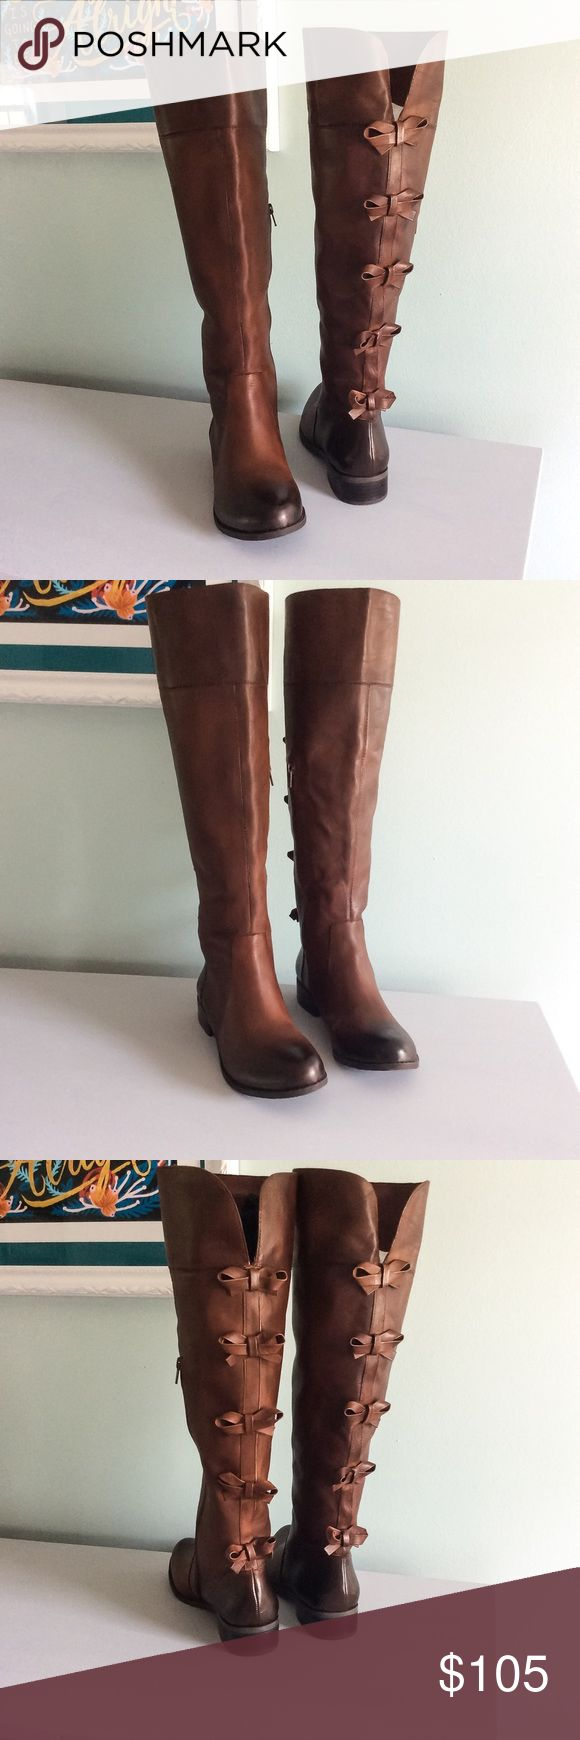 NIB Gianni Bini Cognac Bow Back Riding Boots Sz 9 Brand new in the box (although I cannot find the lid atm) Authentic Gianni Bini Cognac Brown Leather boots with bow back detail. Slight heel, half zip on the inside calf. Super cute! Only parting with these because I have way too many boots. Priced to sell! Gianni Bini Shoes